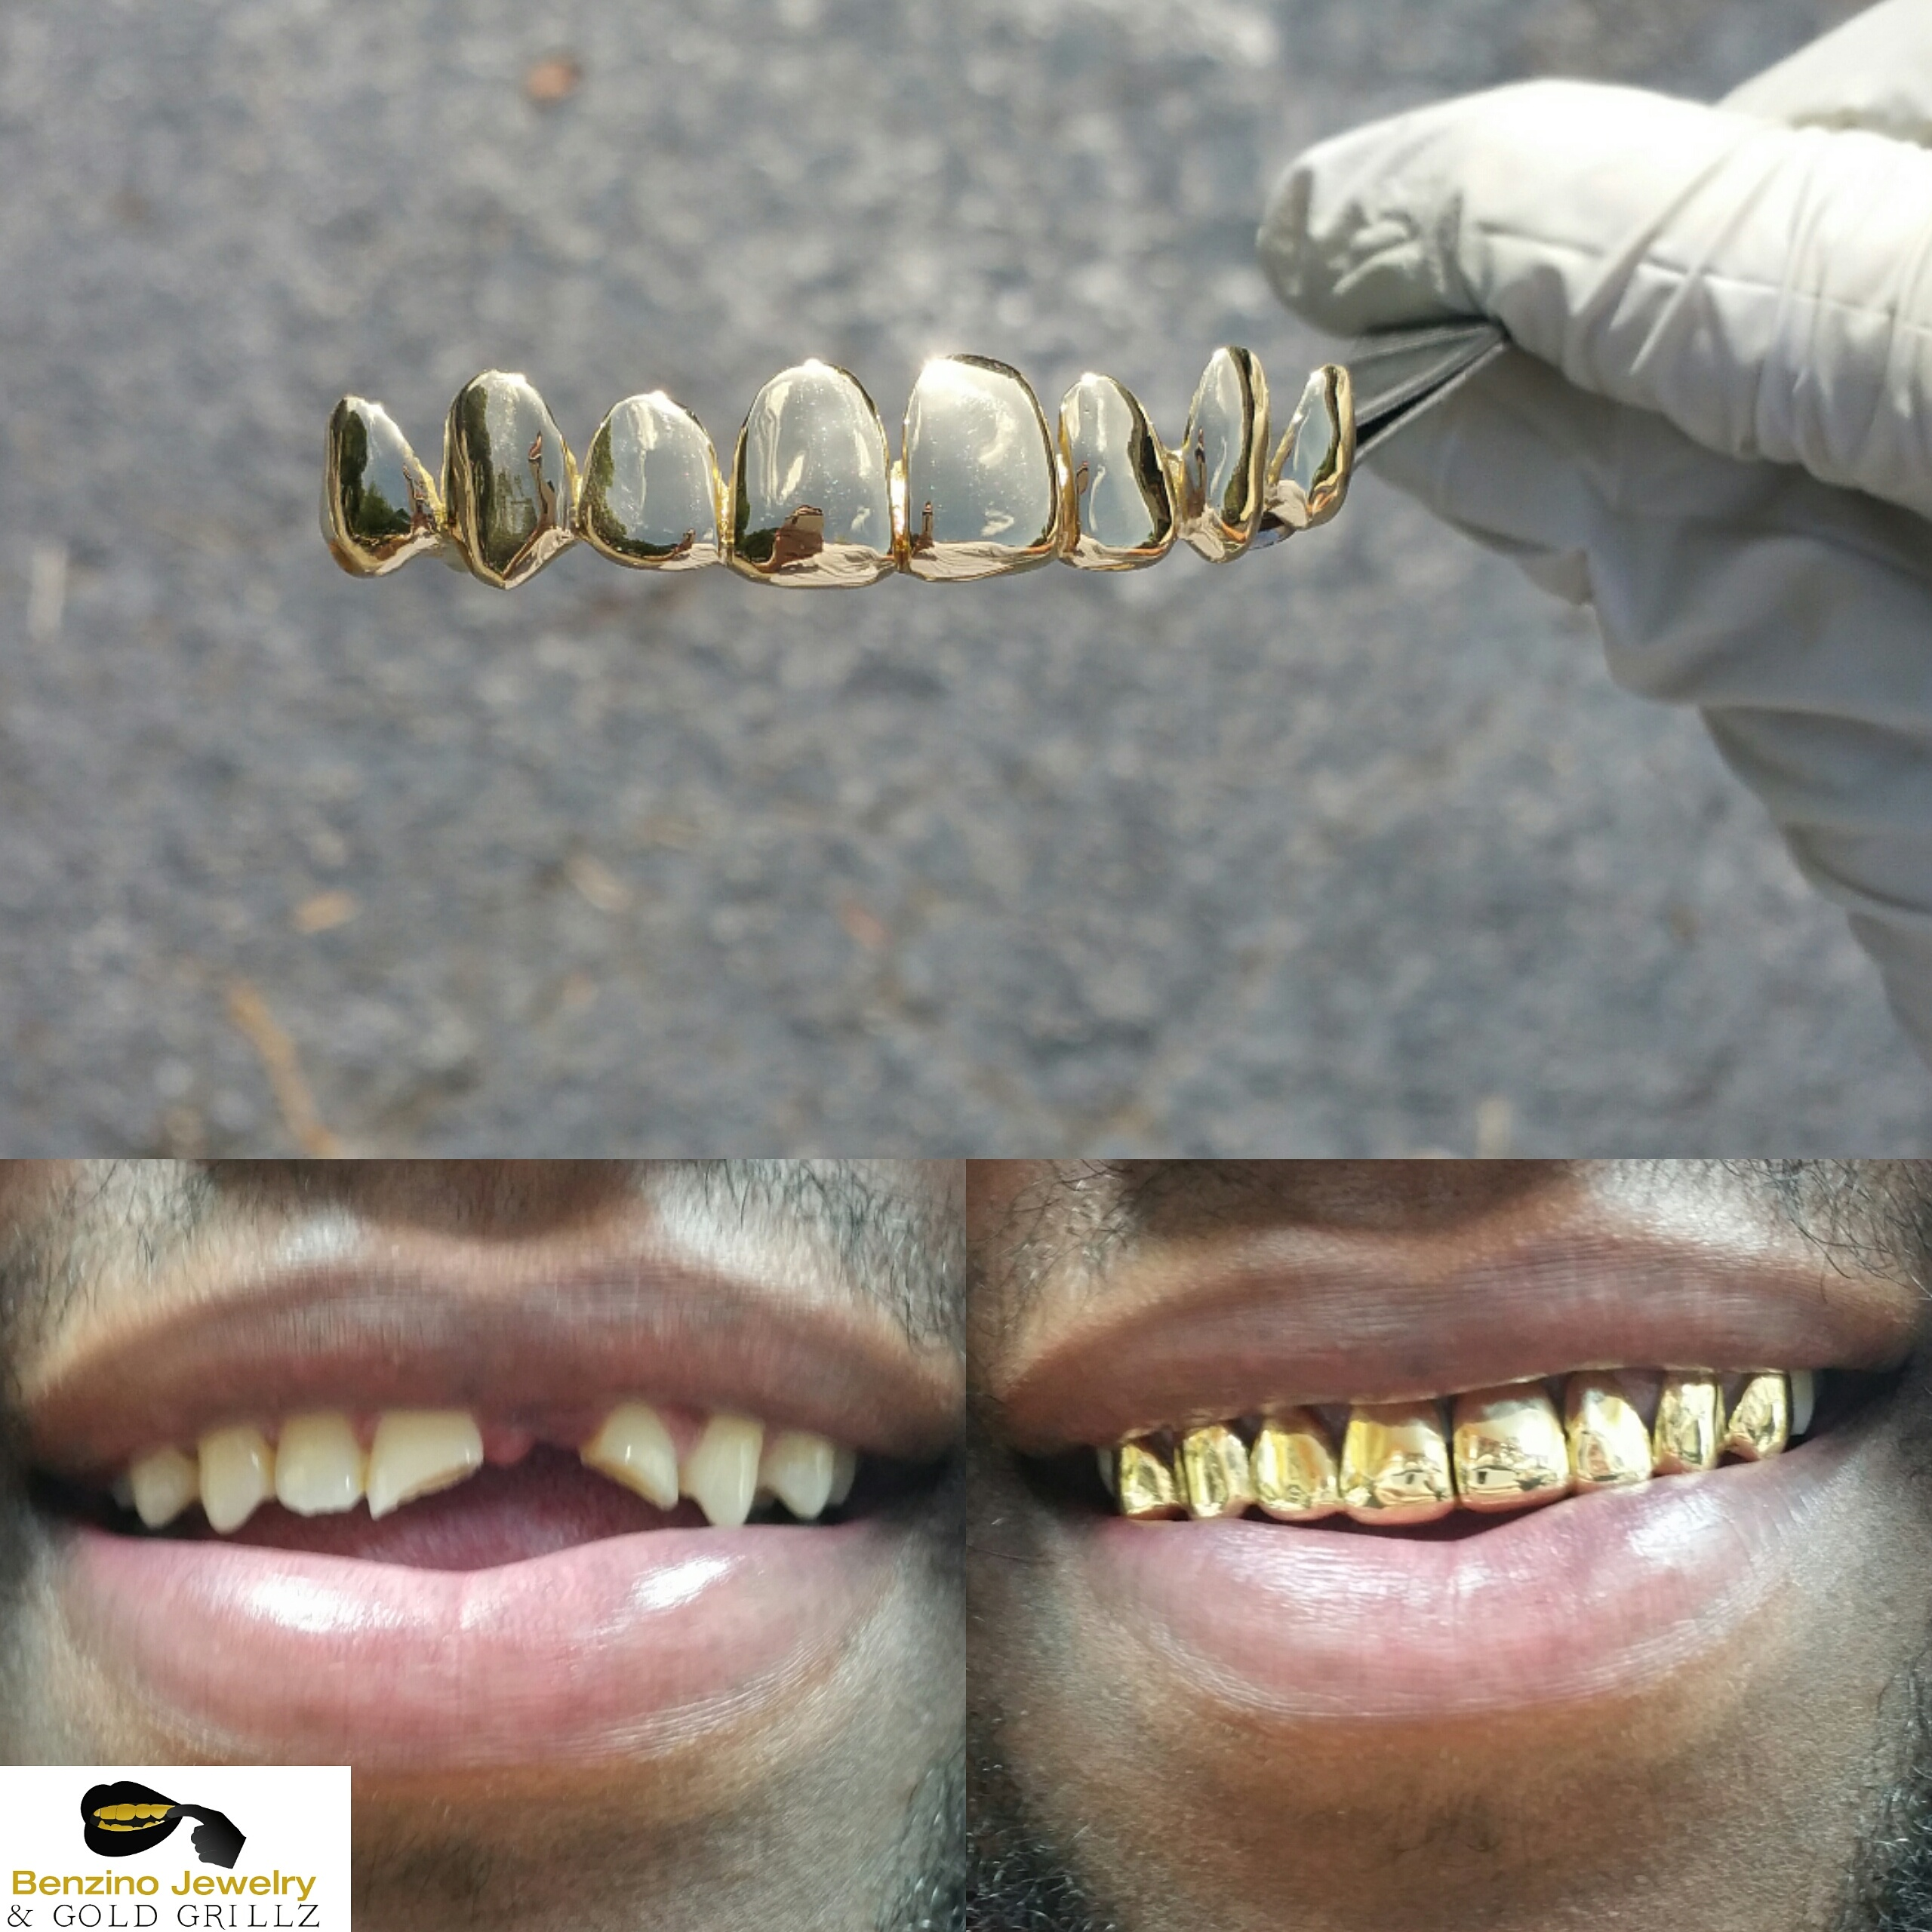 Home - Benzino Jewelry   Gold Grillz 4a711e246e0b